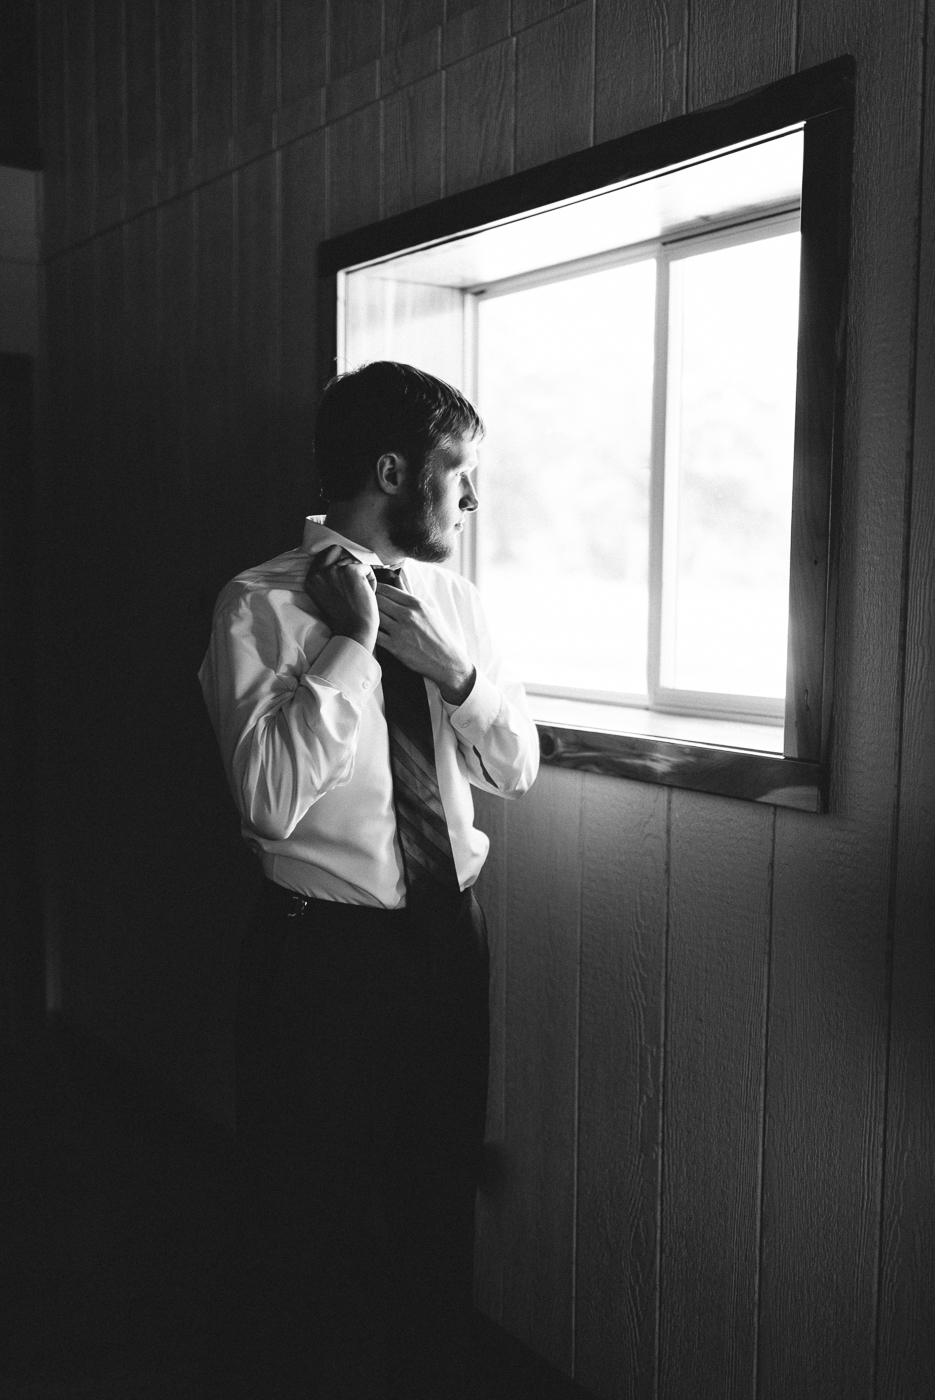 Black and white groom portrait getting ready shot tie window